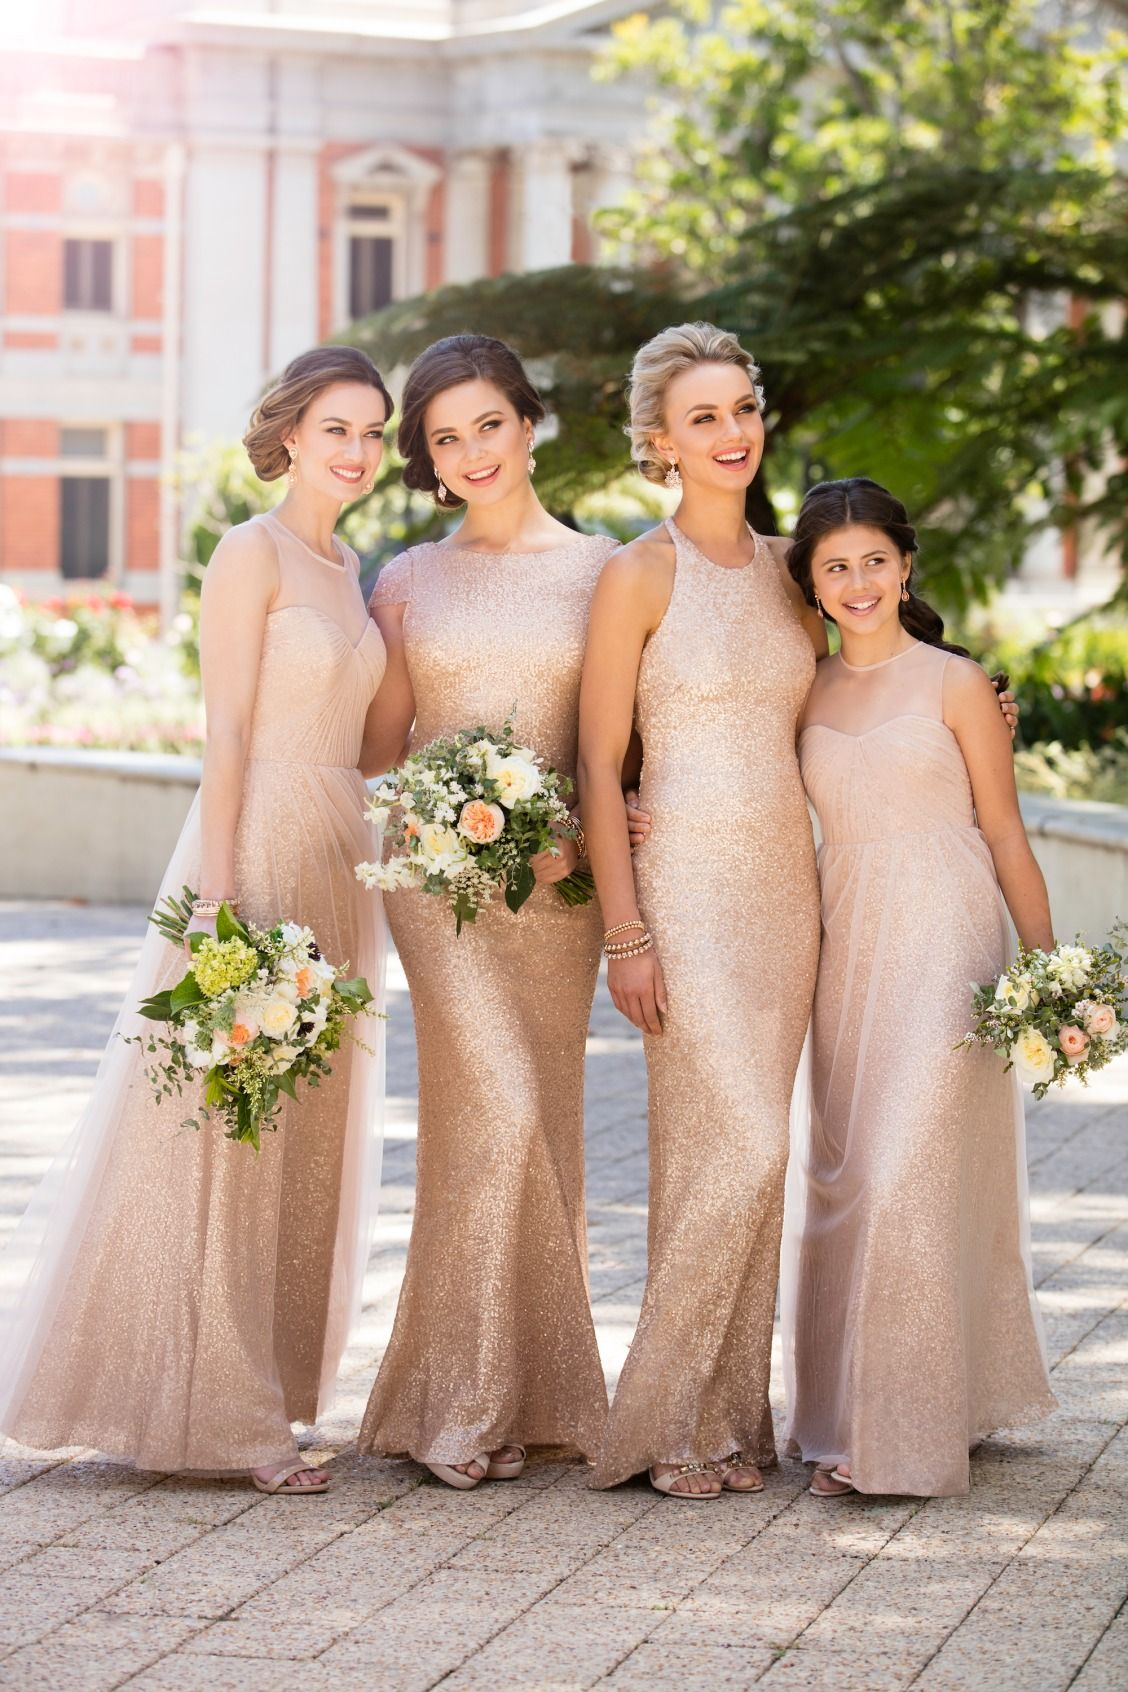 Designer bridesmaid dresses sequin bridesmaid maids and gowns designer bridesmaid dresses junior bridesmaidssequin ombrellifo Choice Image